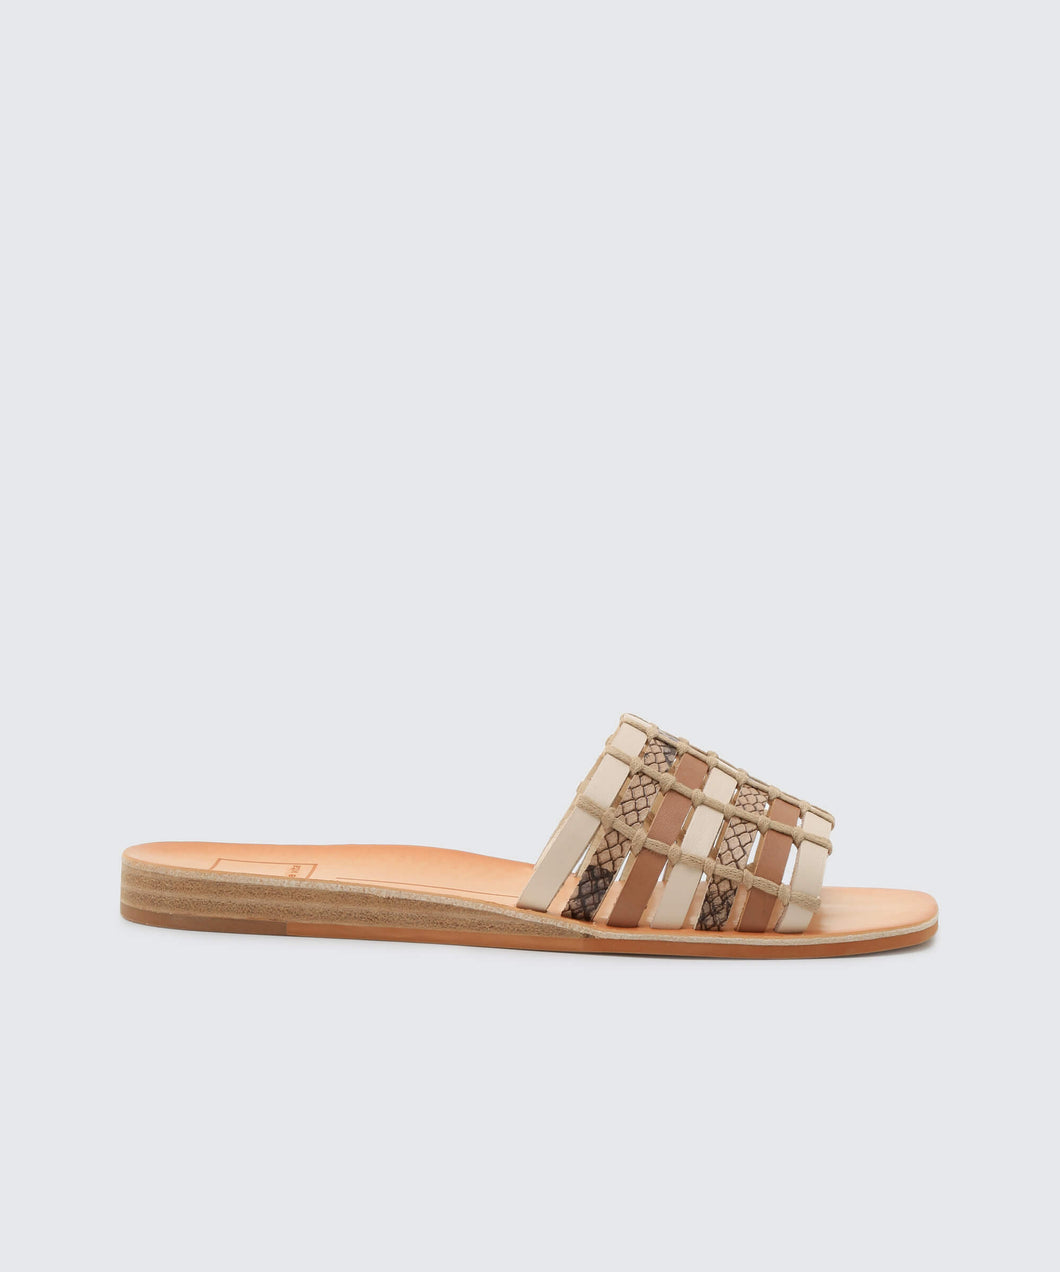 COLSEN SANDALS NATURAL MULTI -   Dolce Vita